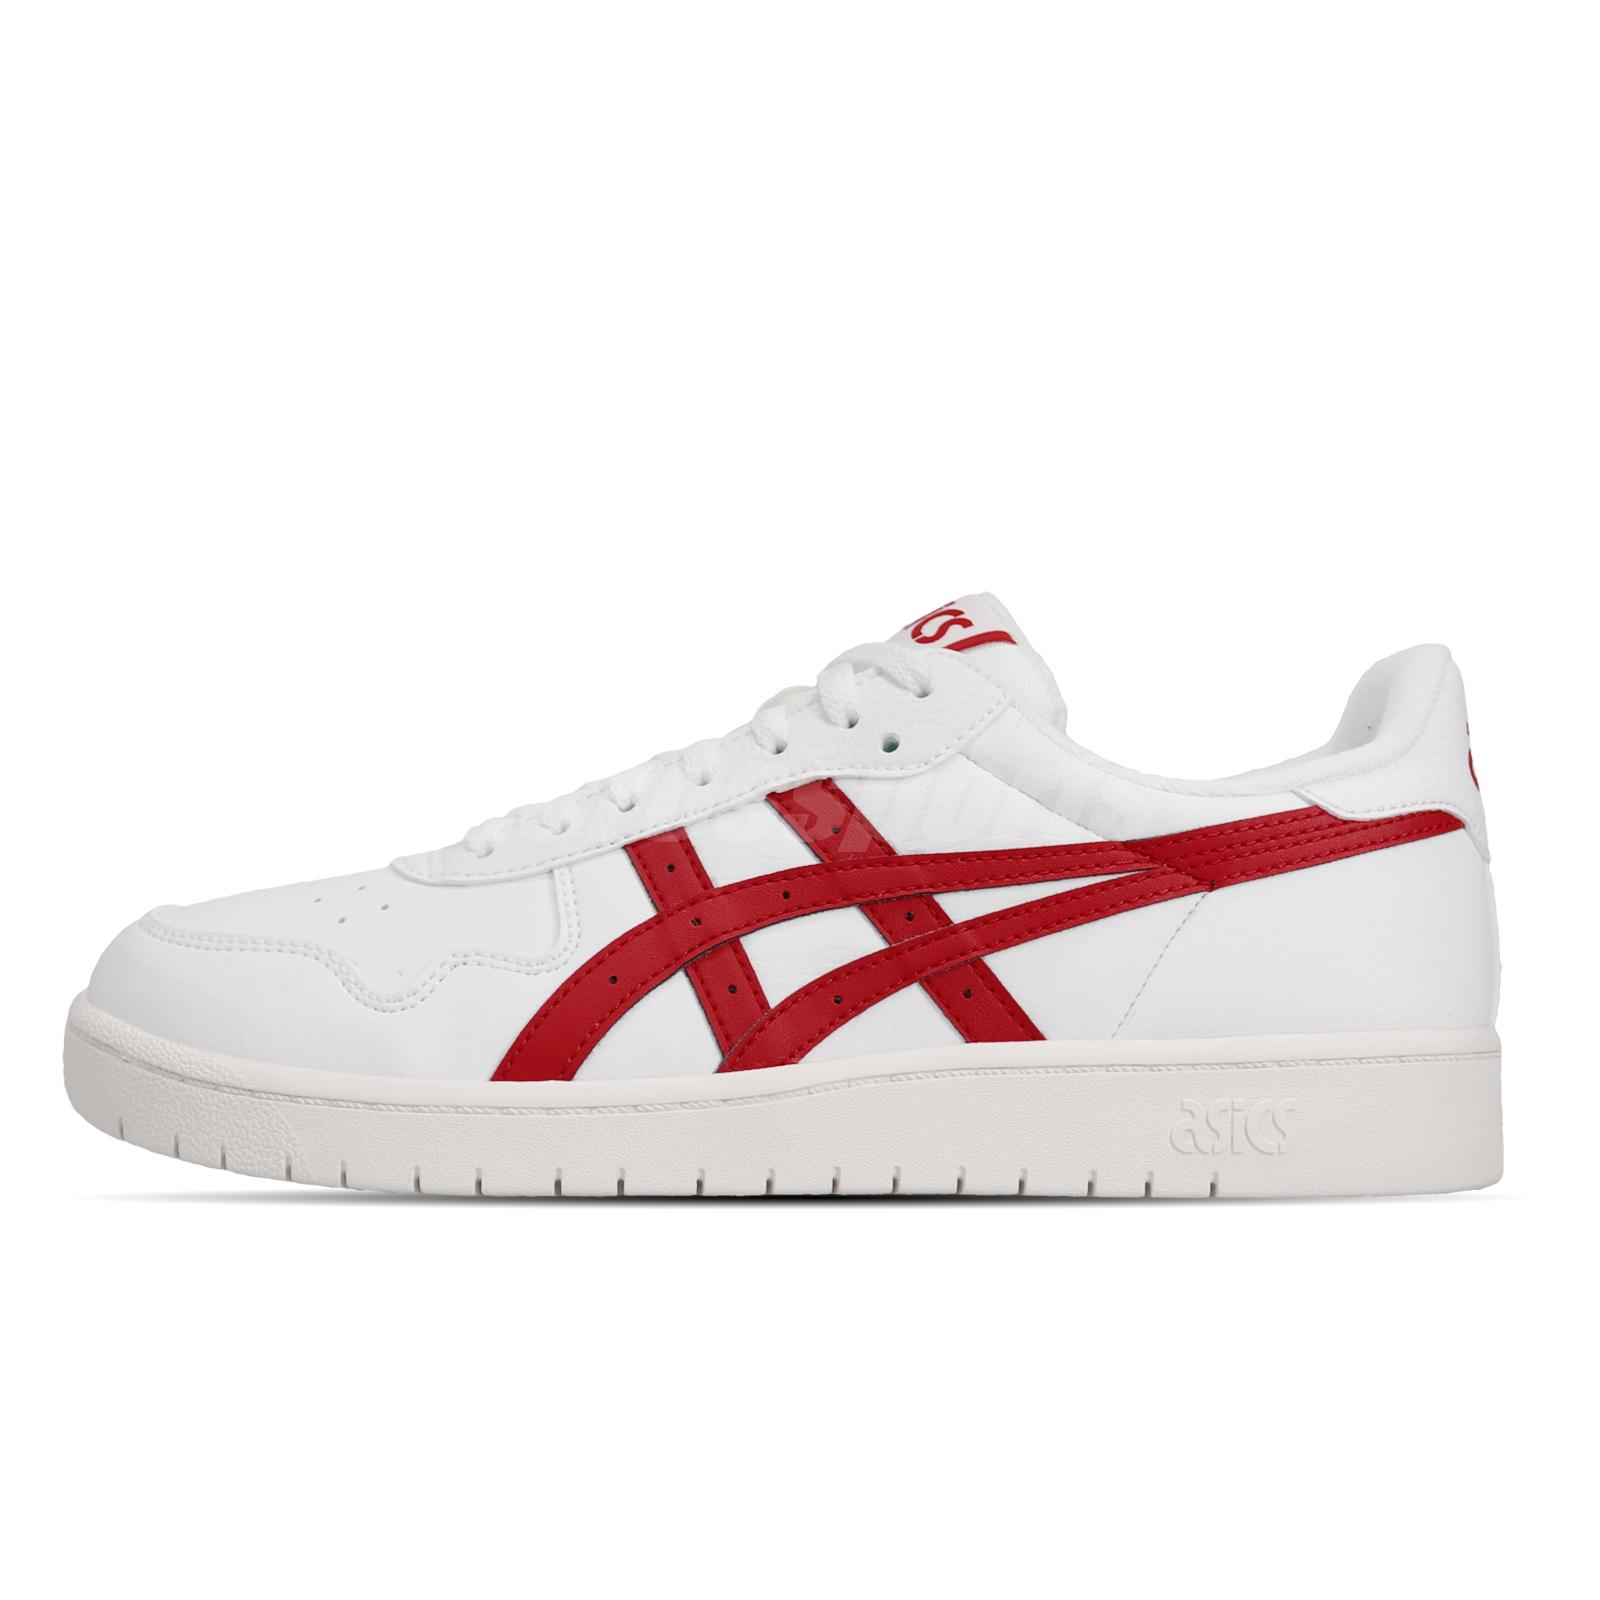 asics sneakers red